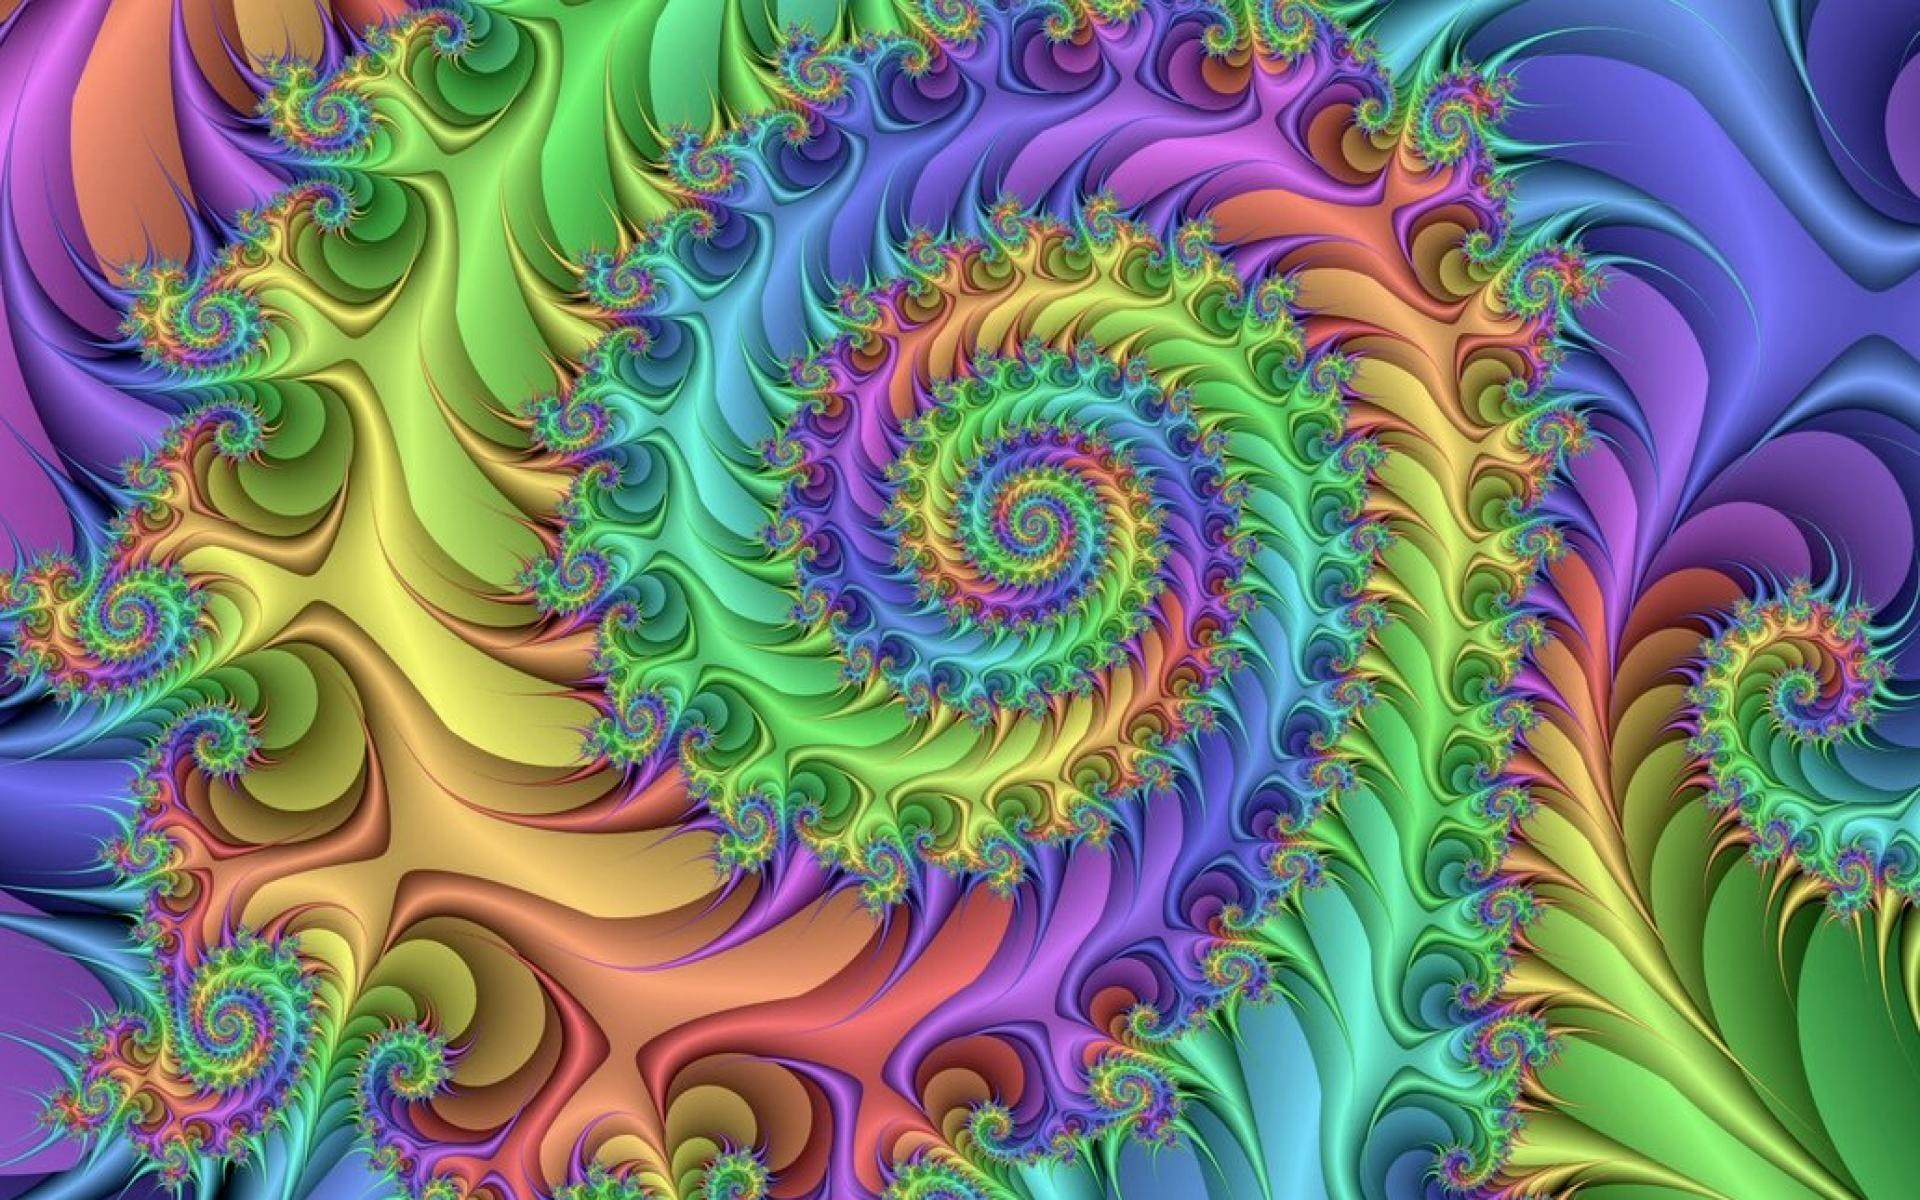 Trippy Hippie Backgrounds 946011 Hd Wallpaper Backgrounds